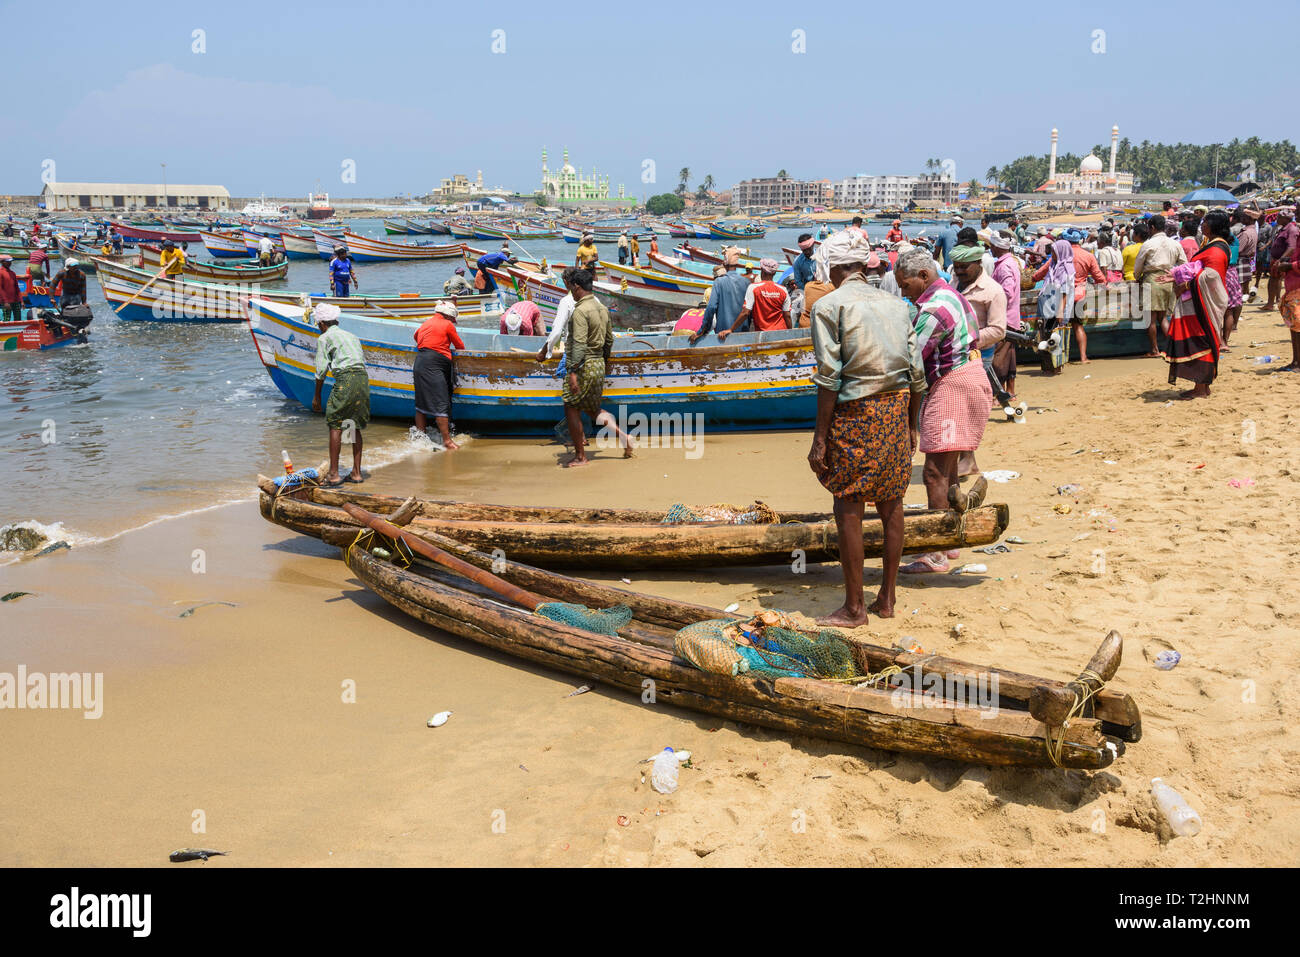 Fishing boats at Vizhinjam beach fish market, near Kovalam, Kerala, India, South Asia - Stock Image